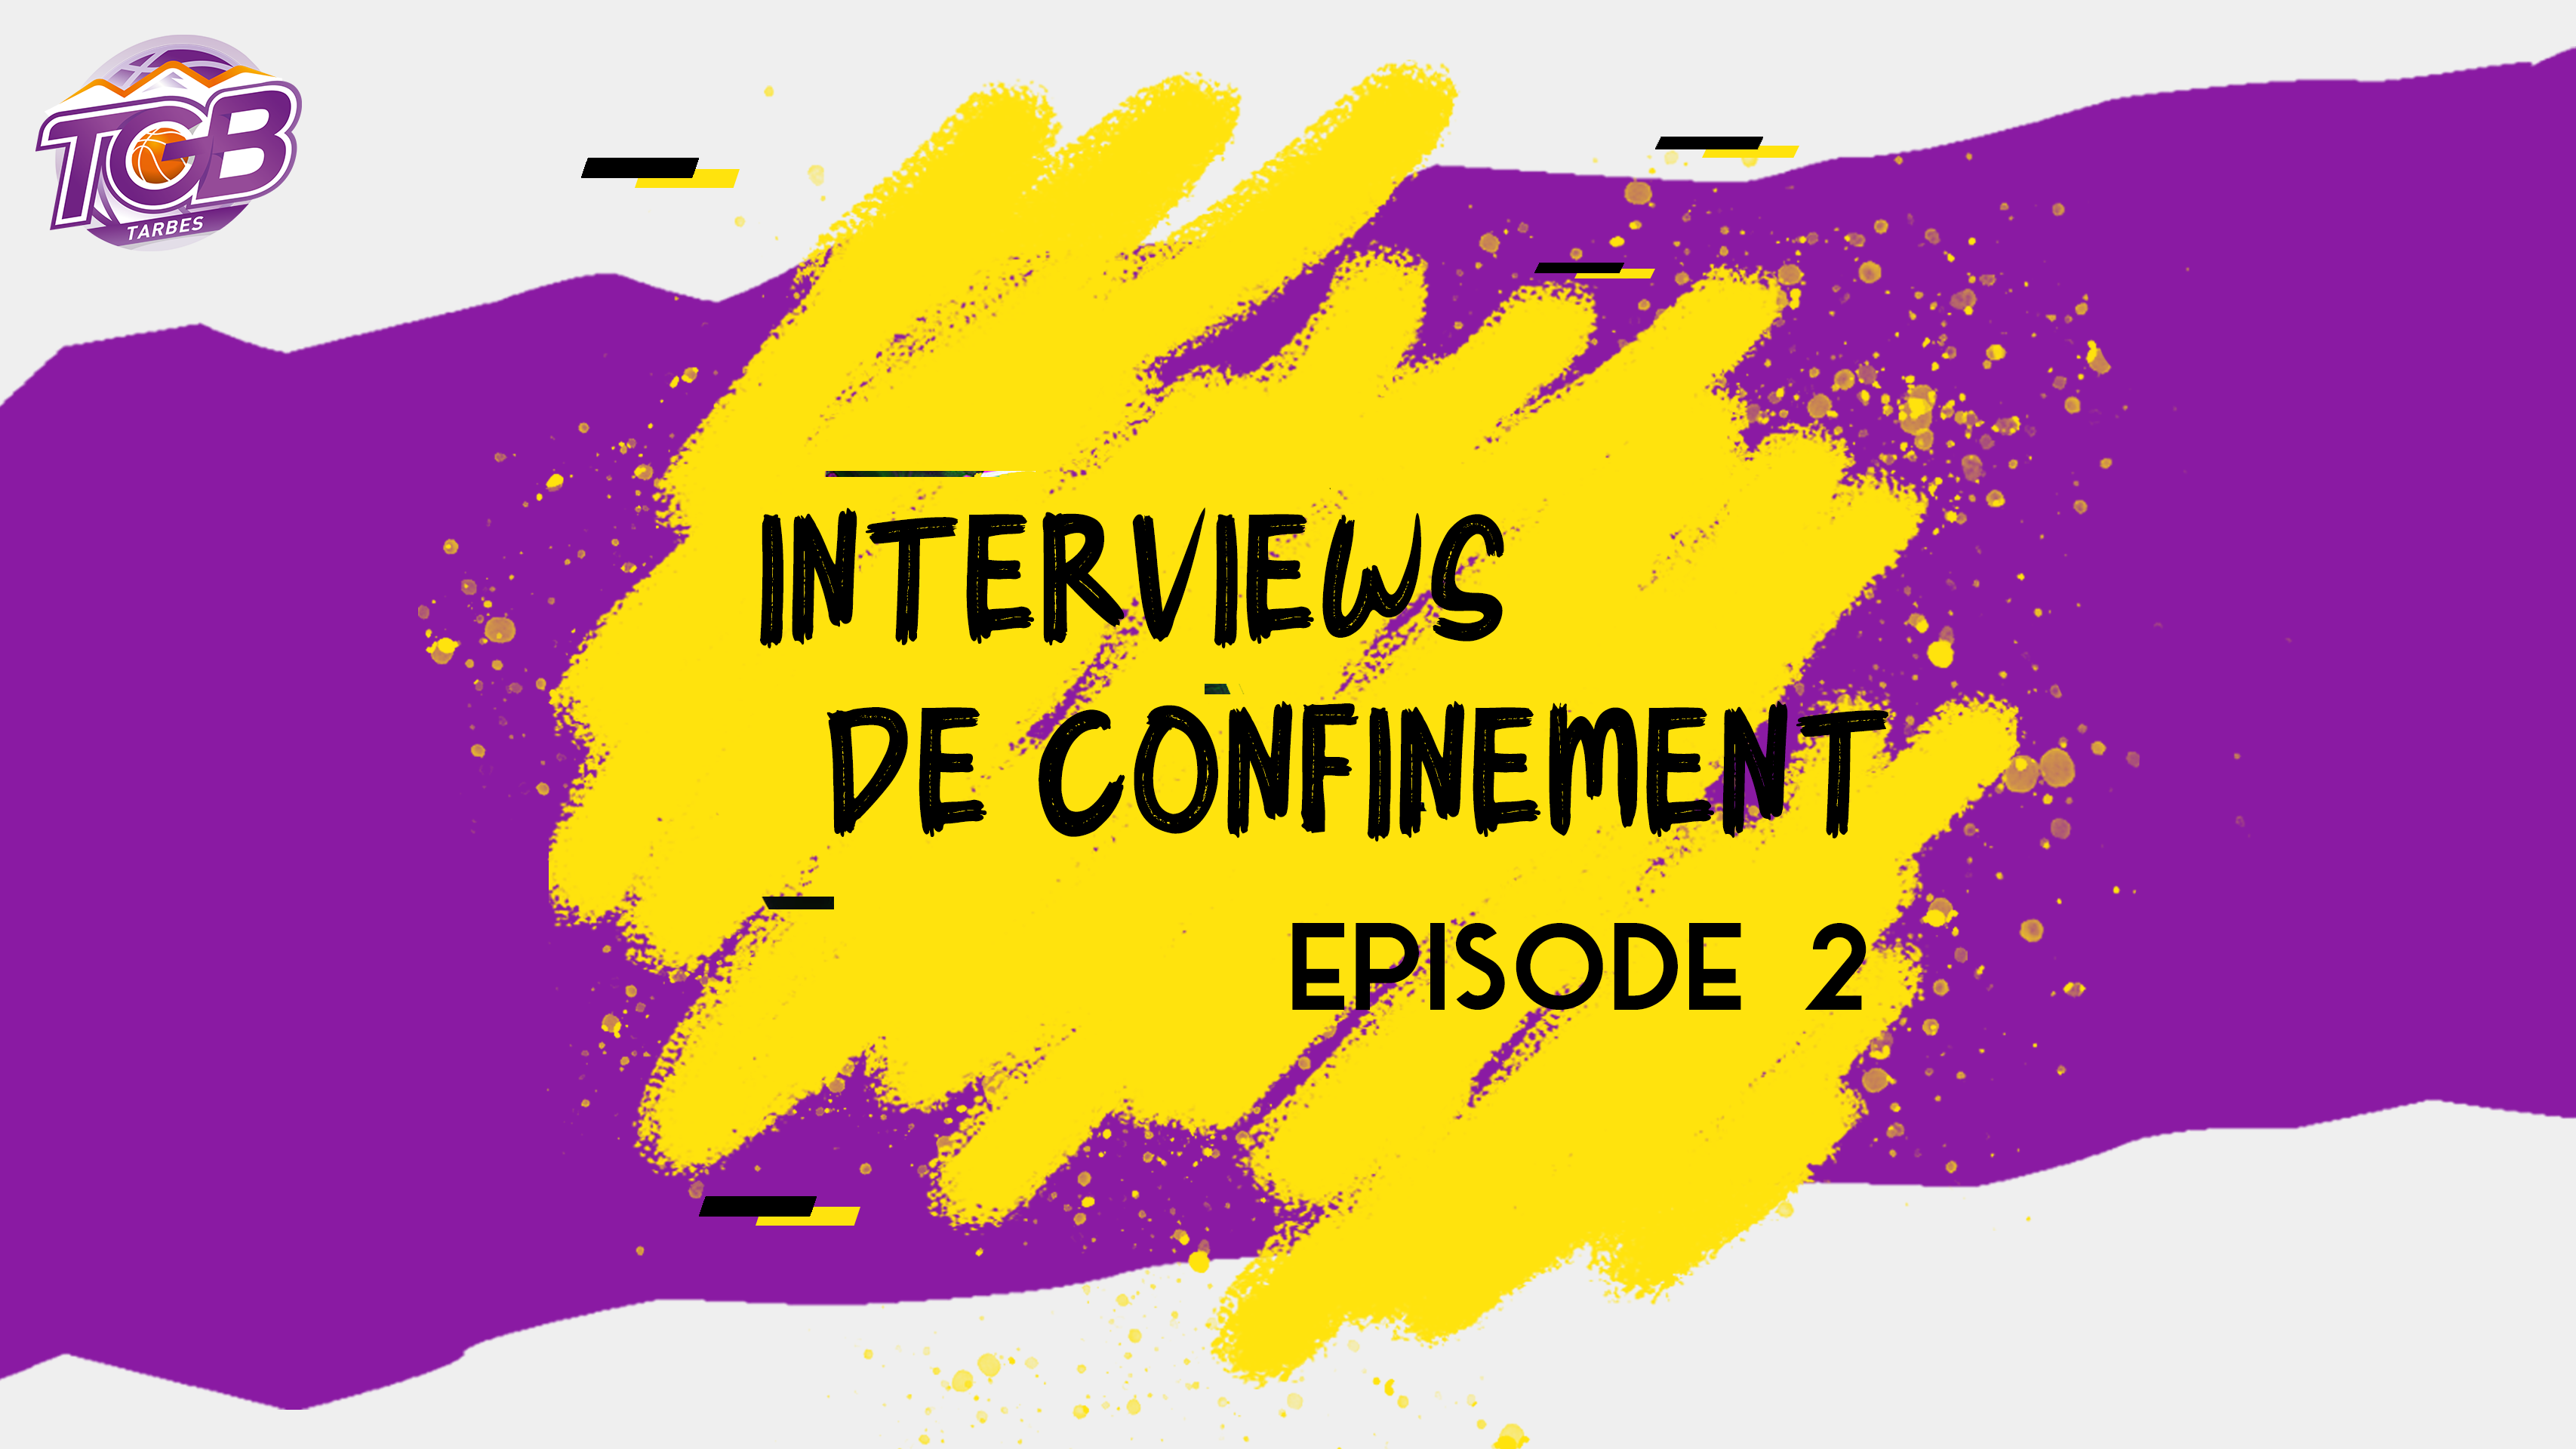 Interview de confinement – Serena Kessler